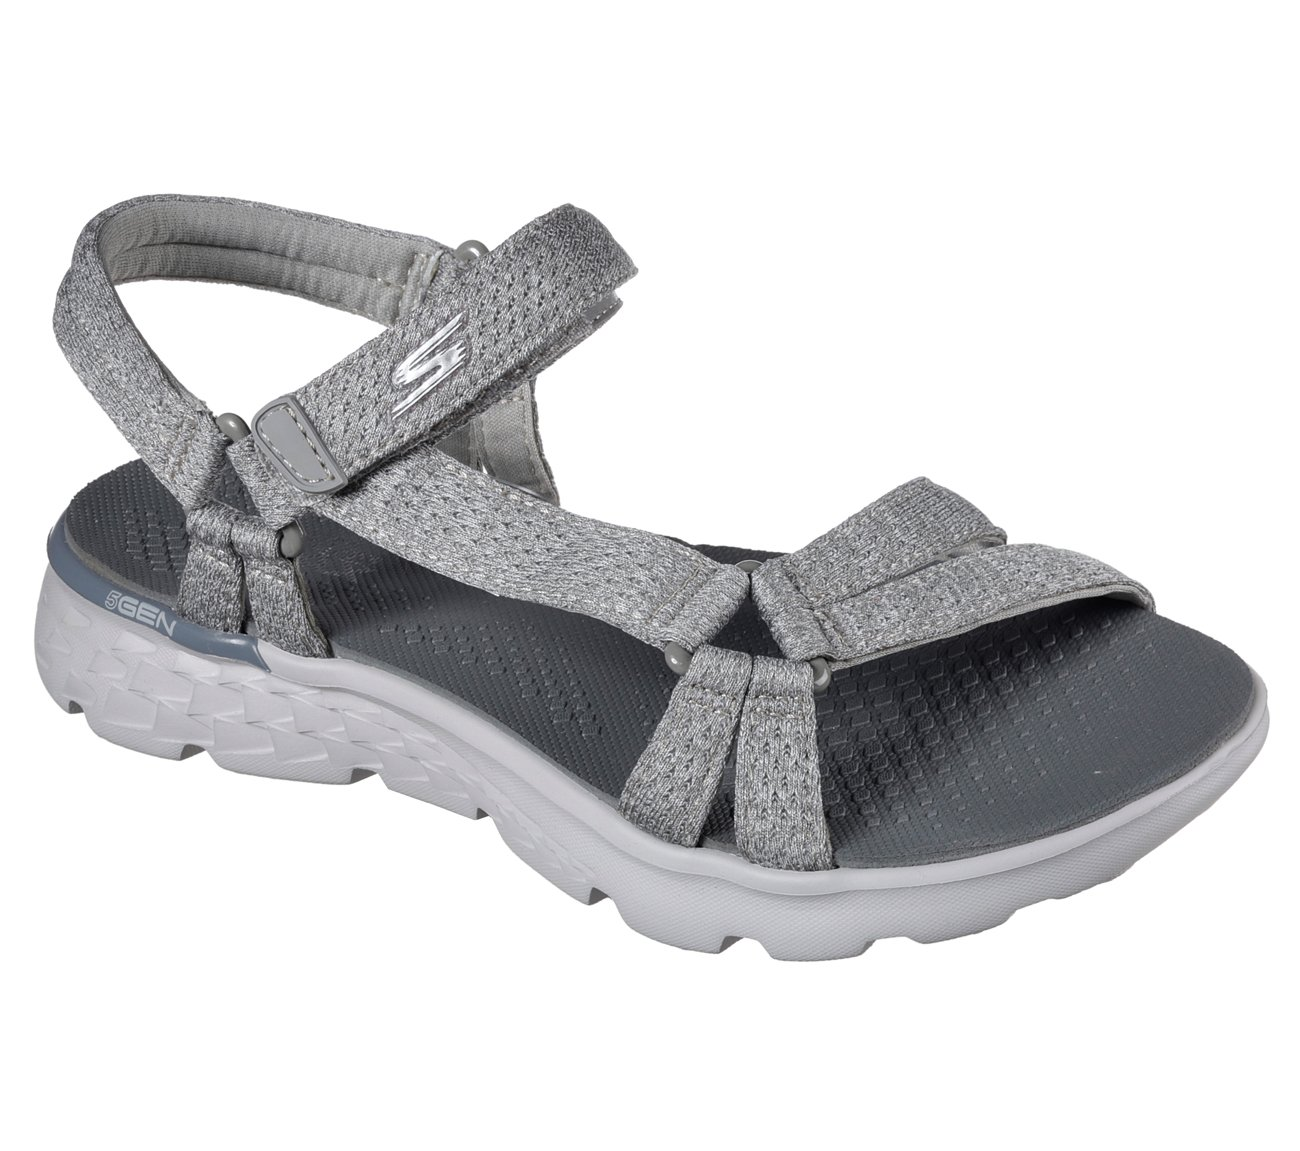 Skechers Women's On the GO 400 Bouncy Sandal,Gray,US 5 M by Skechers